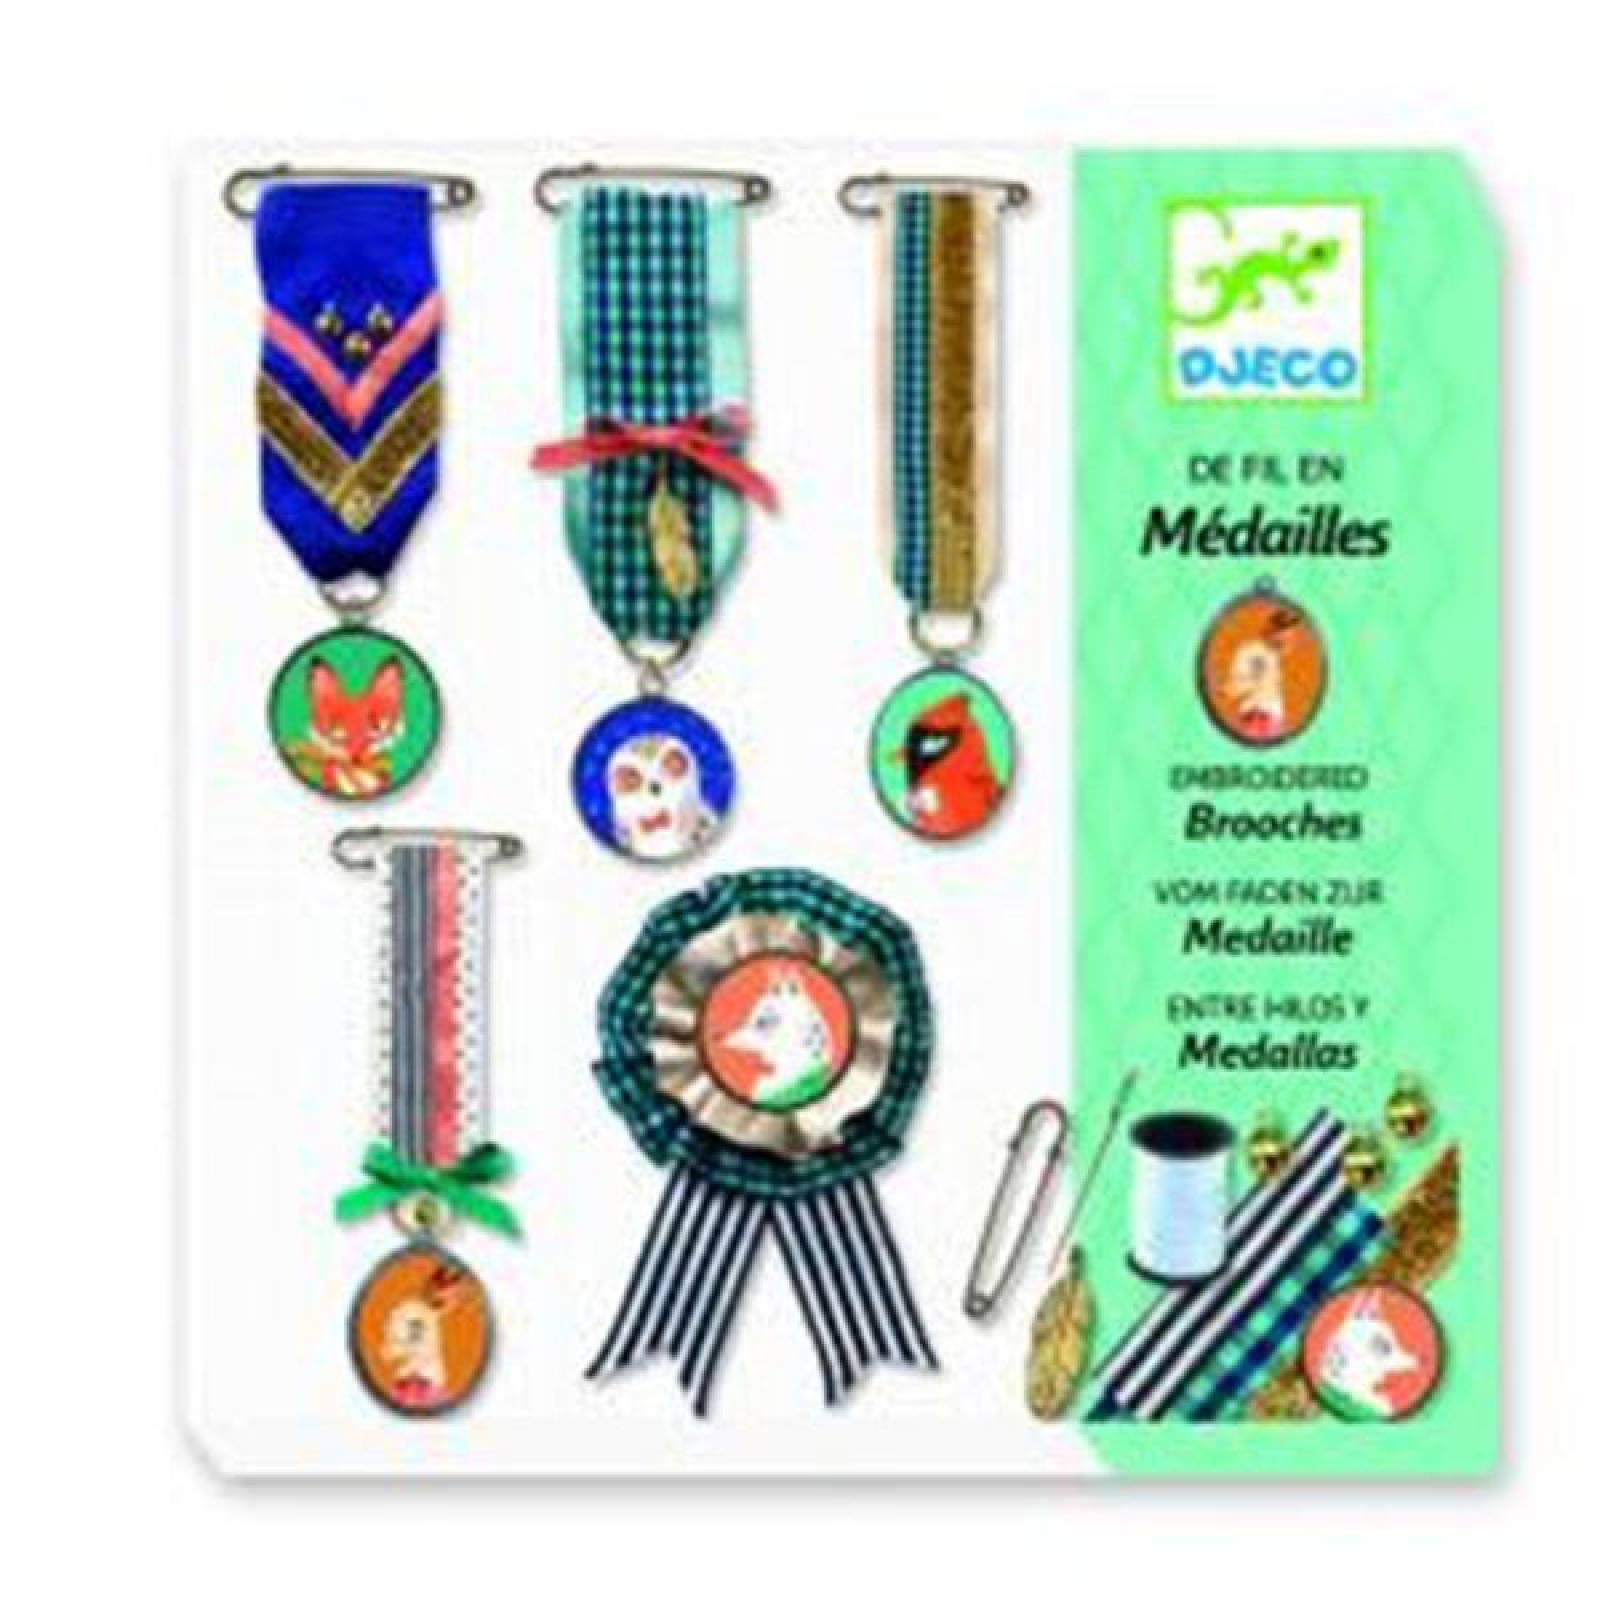 Sewing Embroidered Brooches Creative Kit By Djeco 7-13yrs